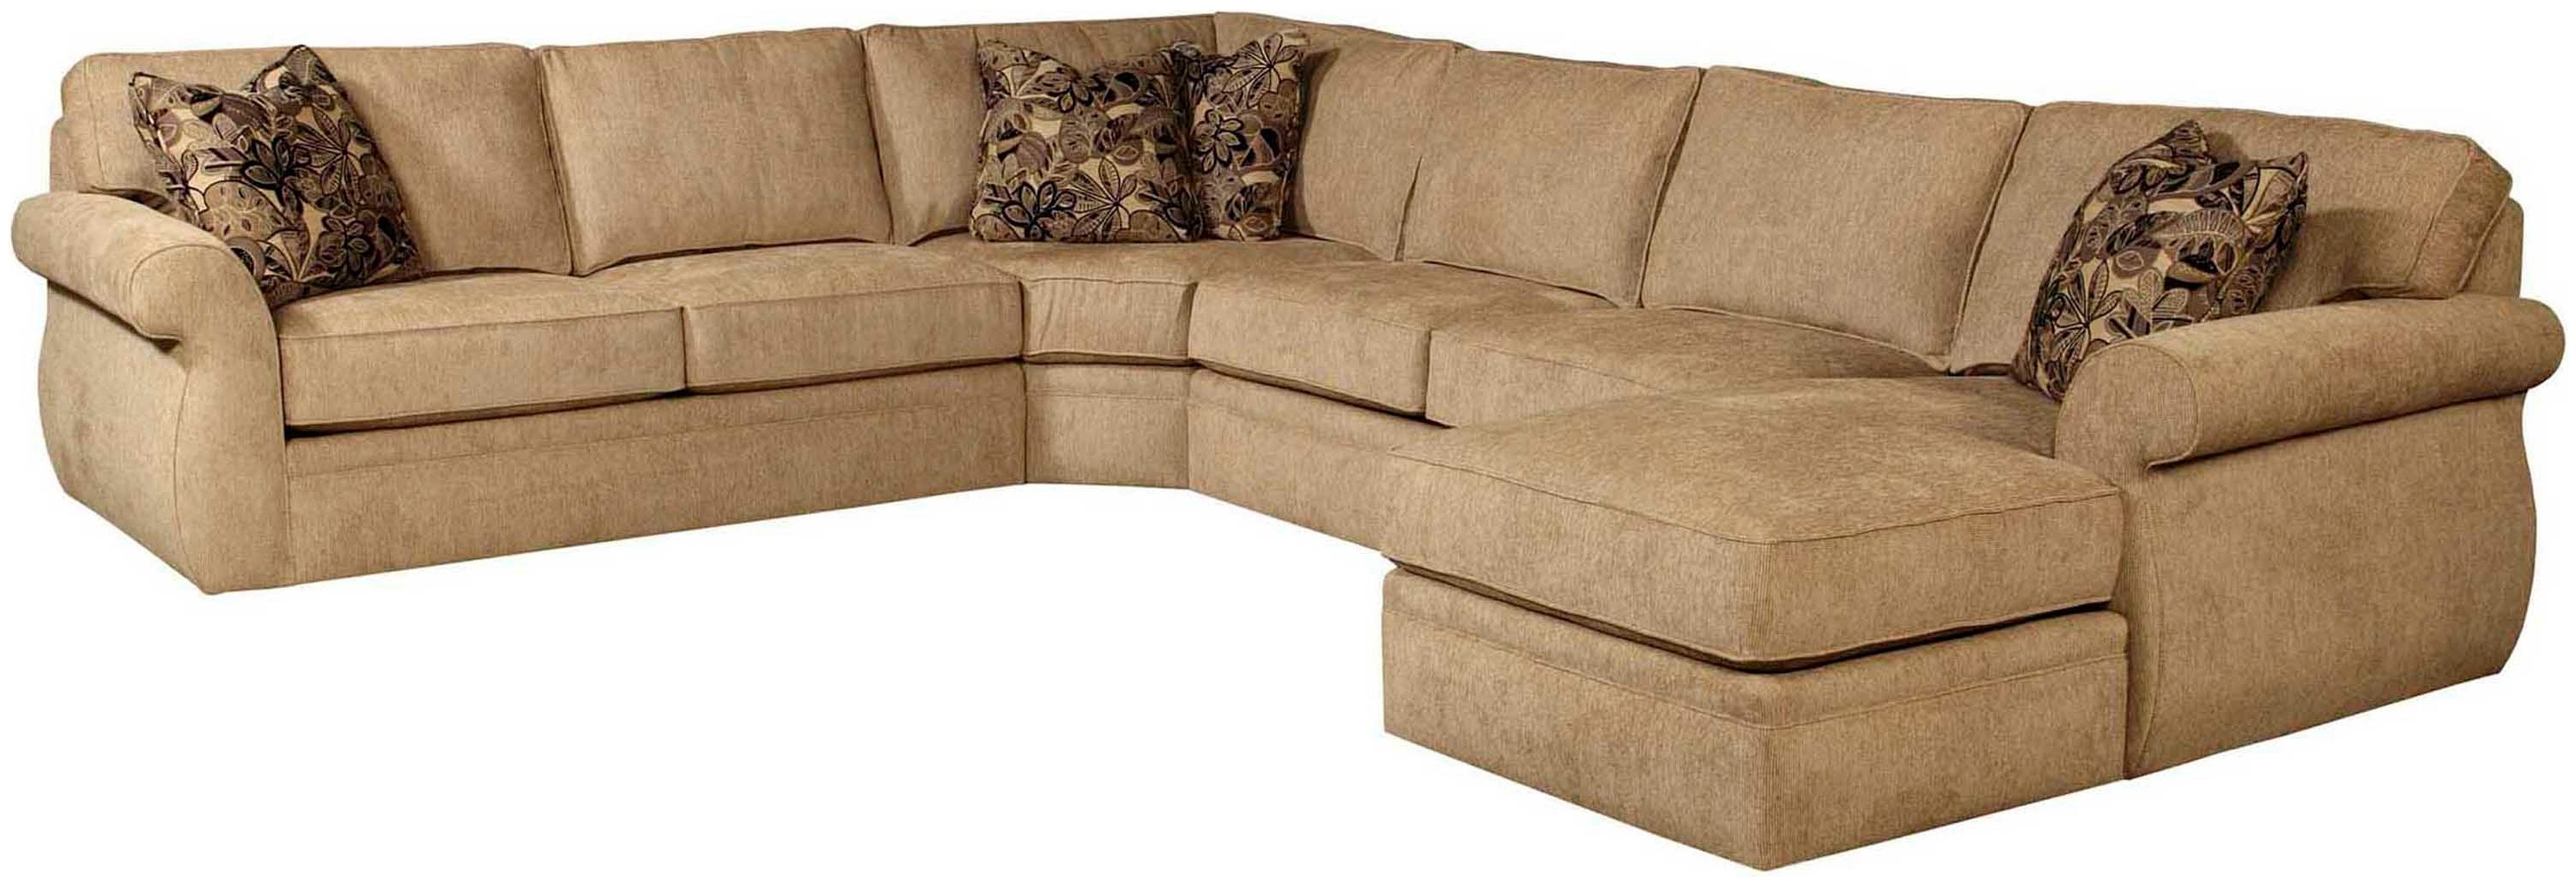 Well Known Furniture: Modern Chaise Sectional With Classic Comfortable Design For Long Couches With Chaise (View 6 of 15)